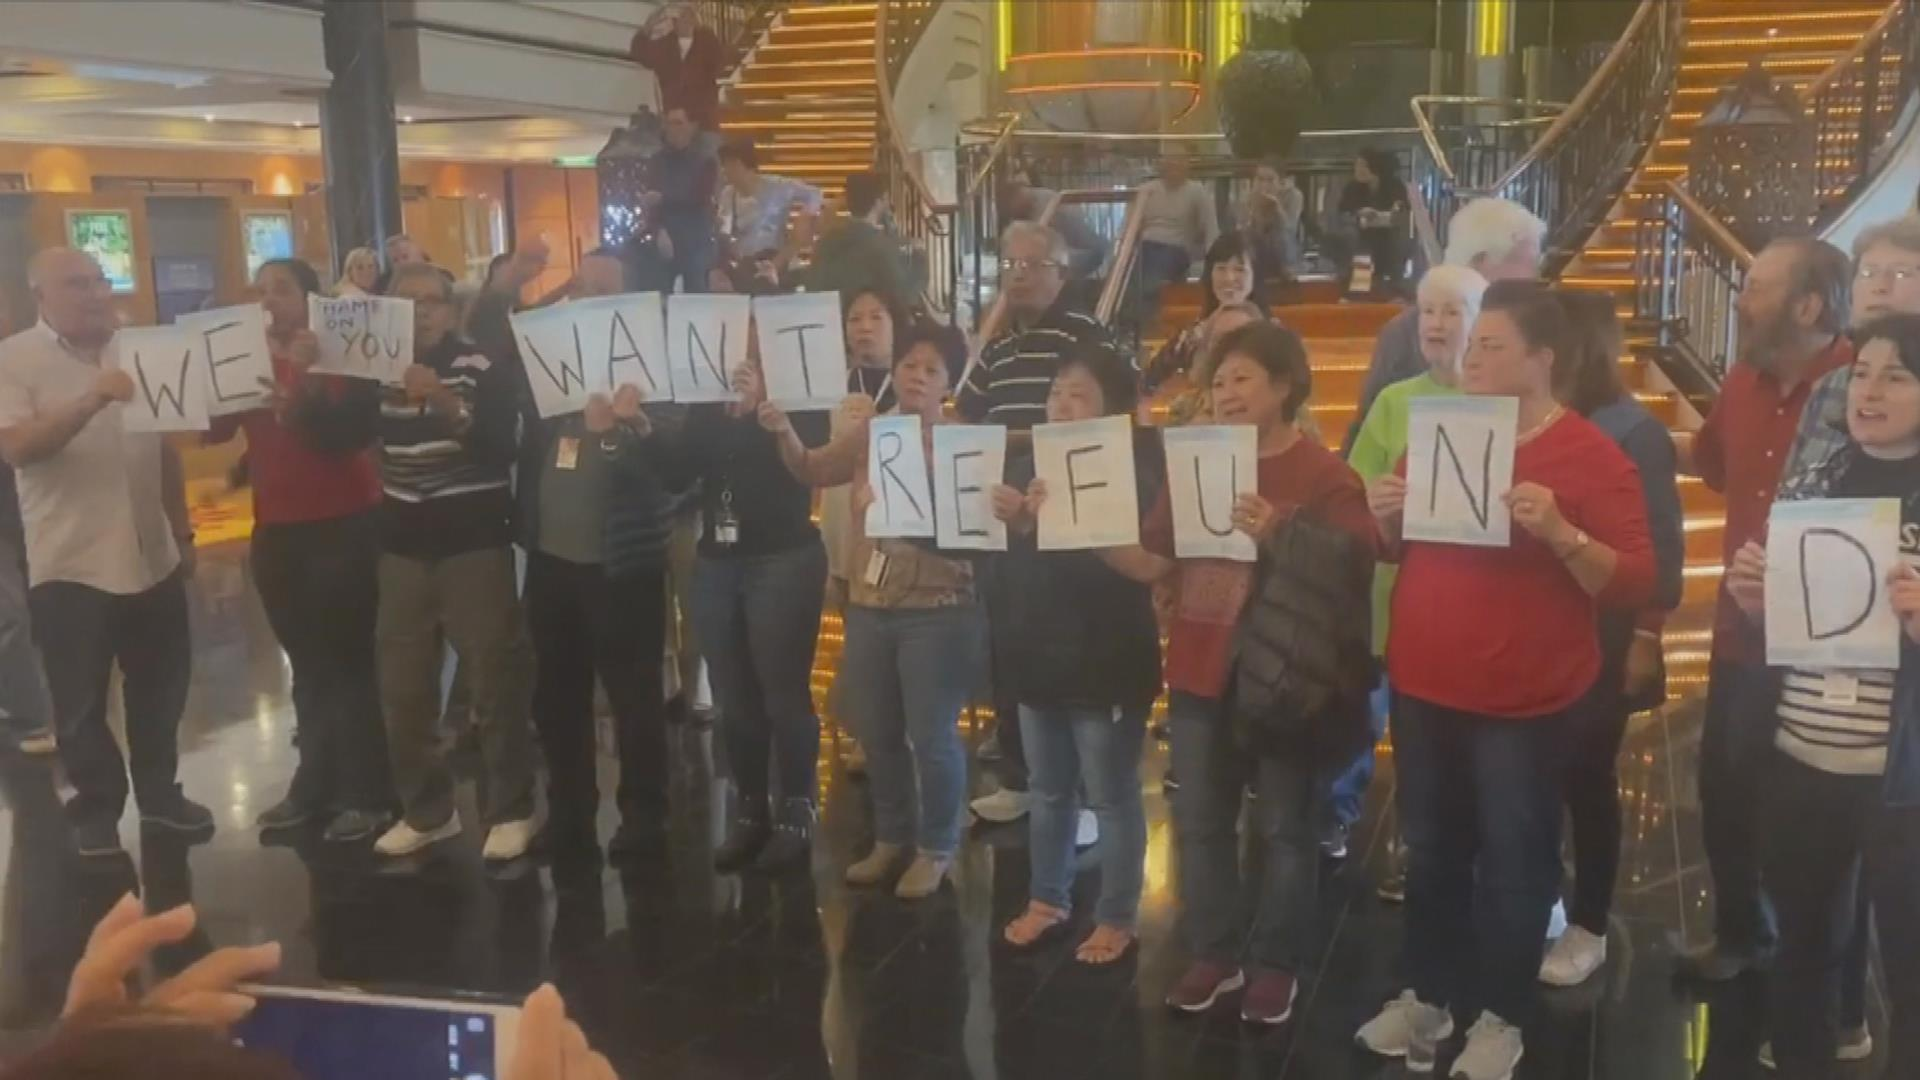 Passengers stage protest on Norwegian Cruise Line ship